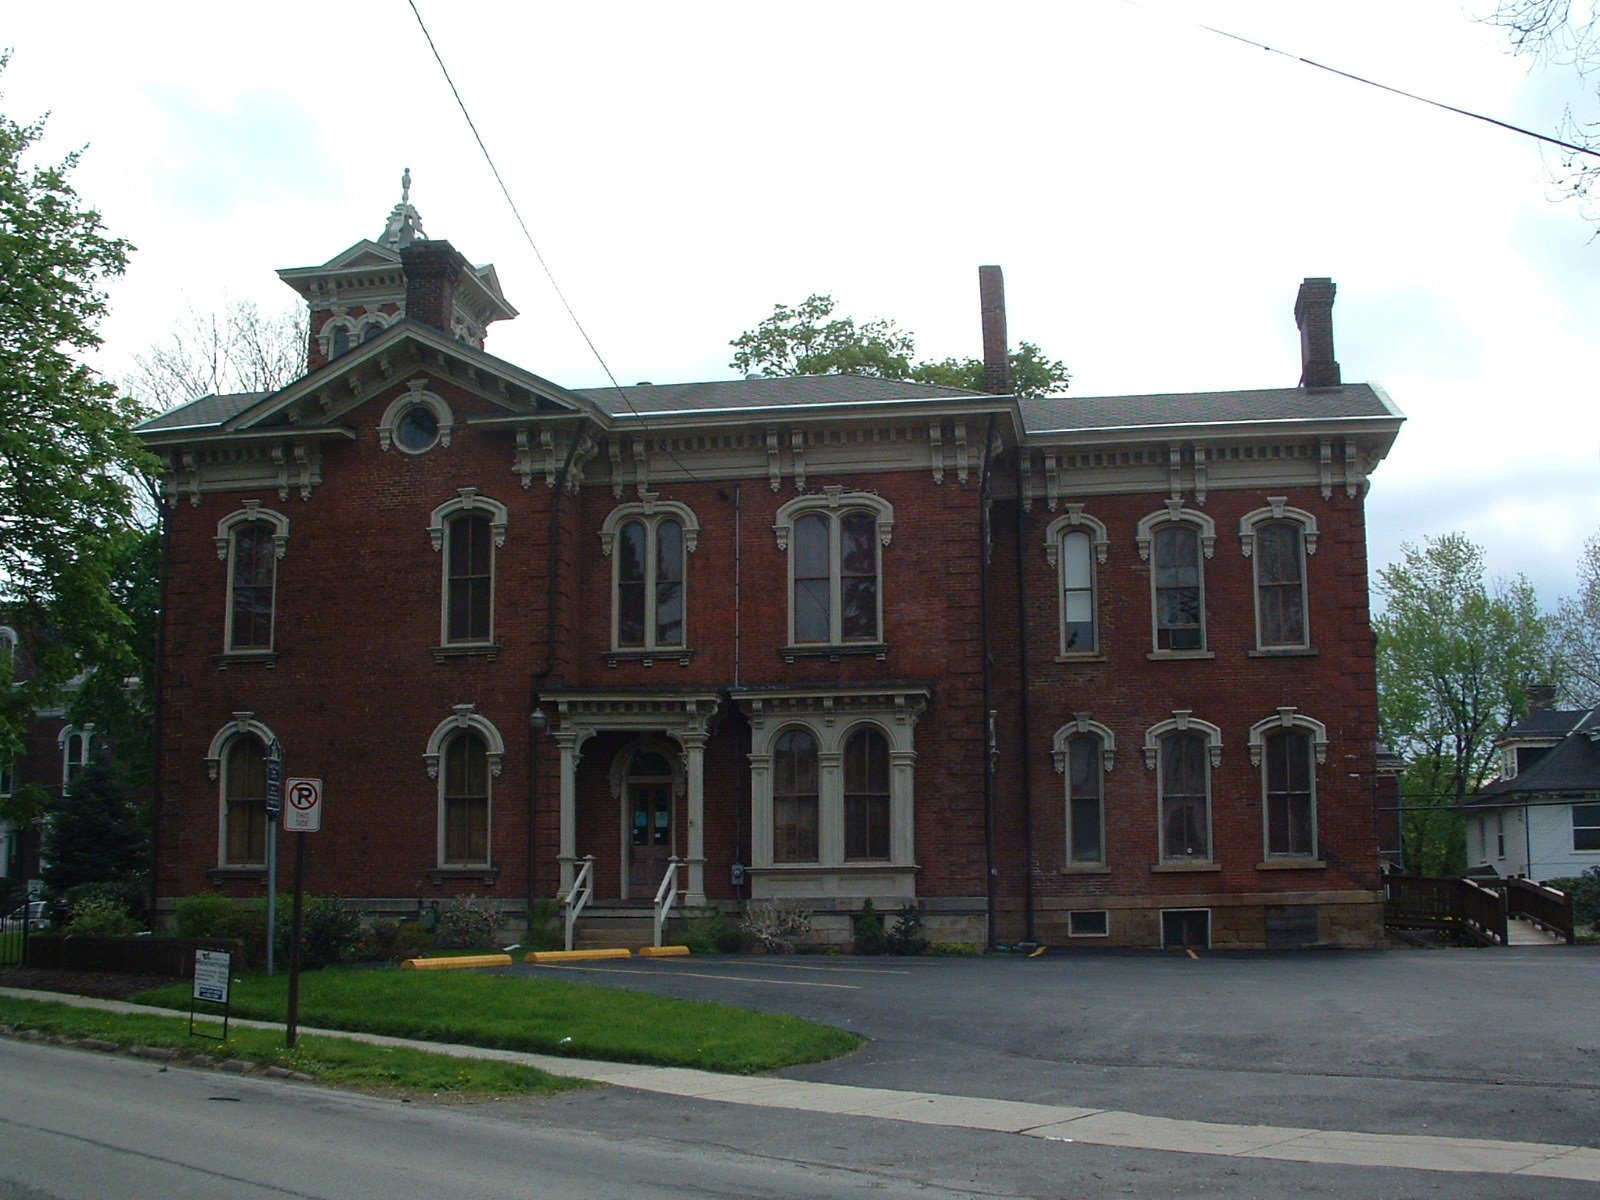 This side view of the house reveals its size and grandeur.